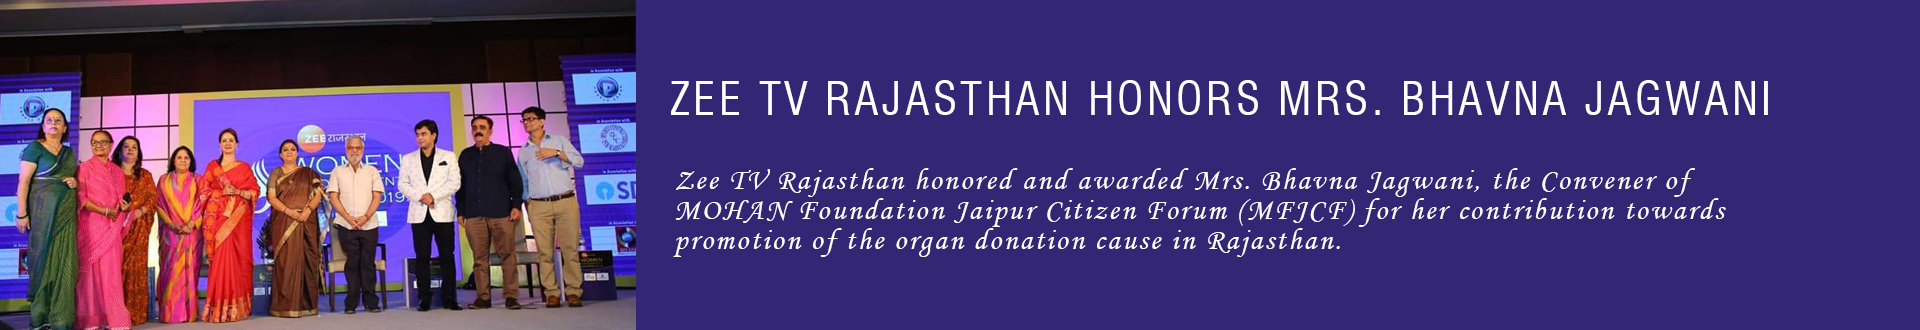 Zee TV Rajasthan Honors Mrs. Bhavna Jagwani